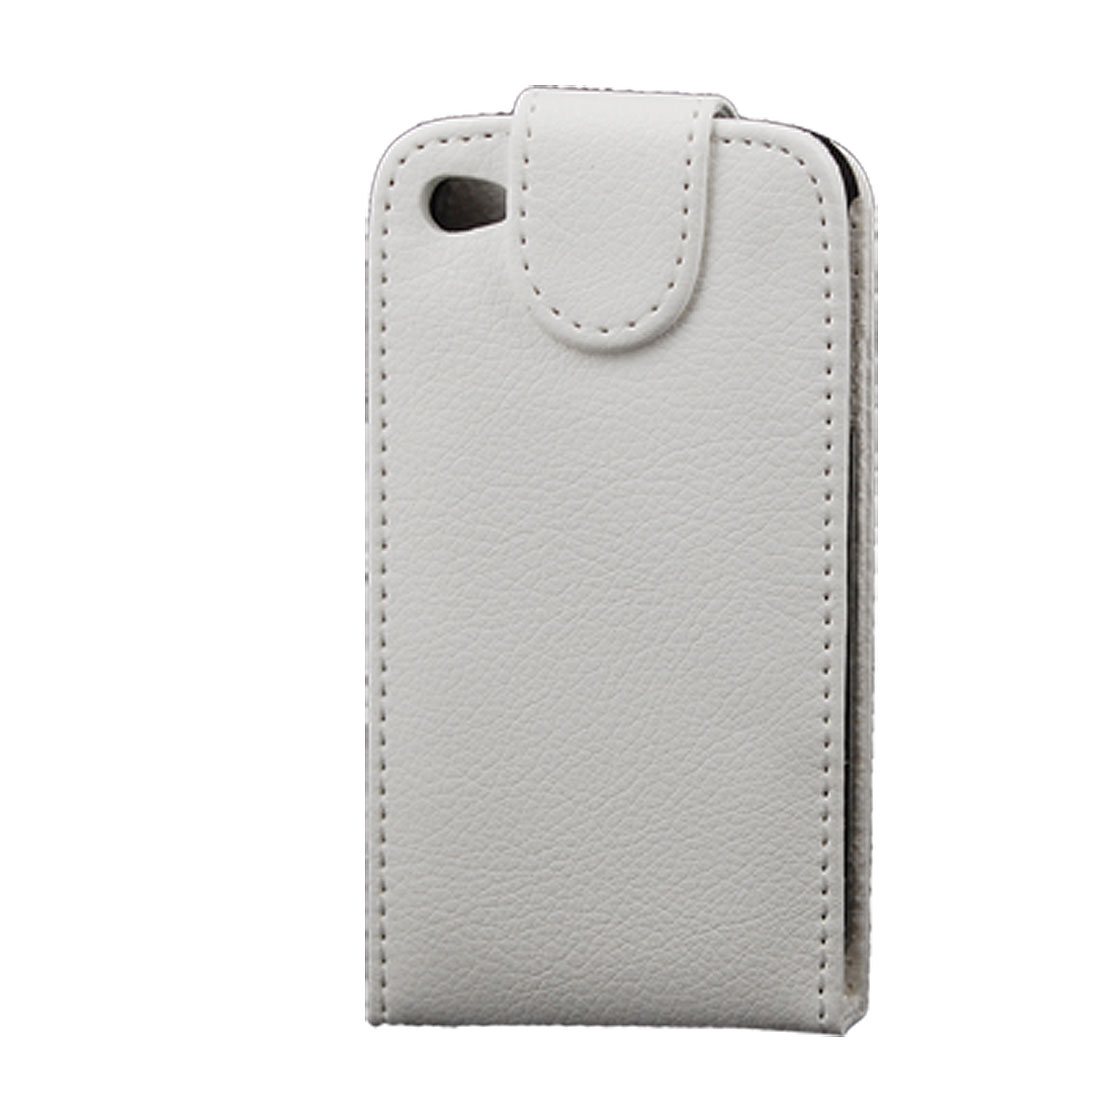 Magnetic Flip Flap Closure White Faux Leather Pouch Case for iPhone 4 4G